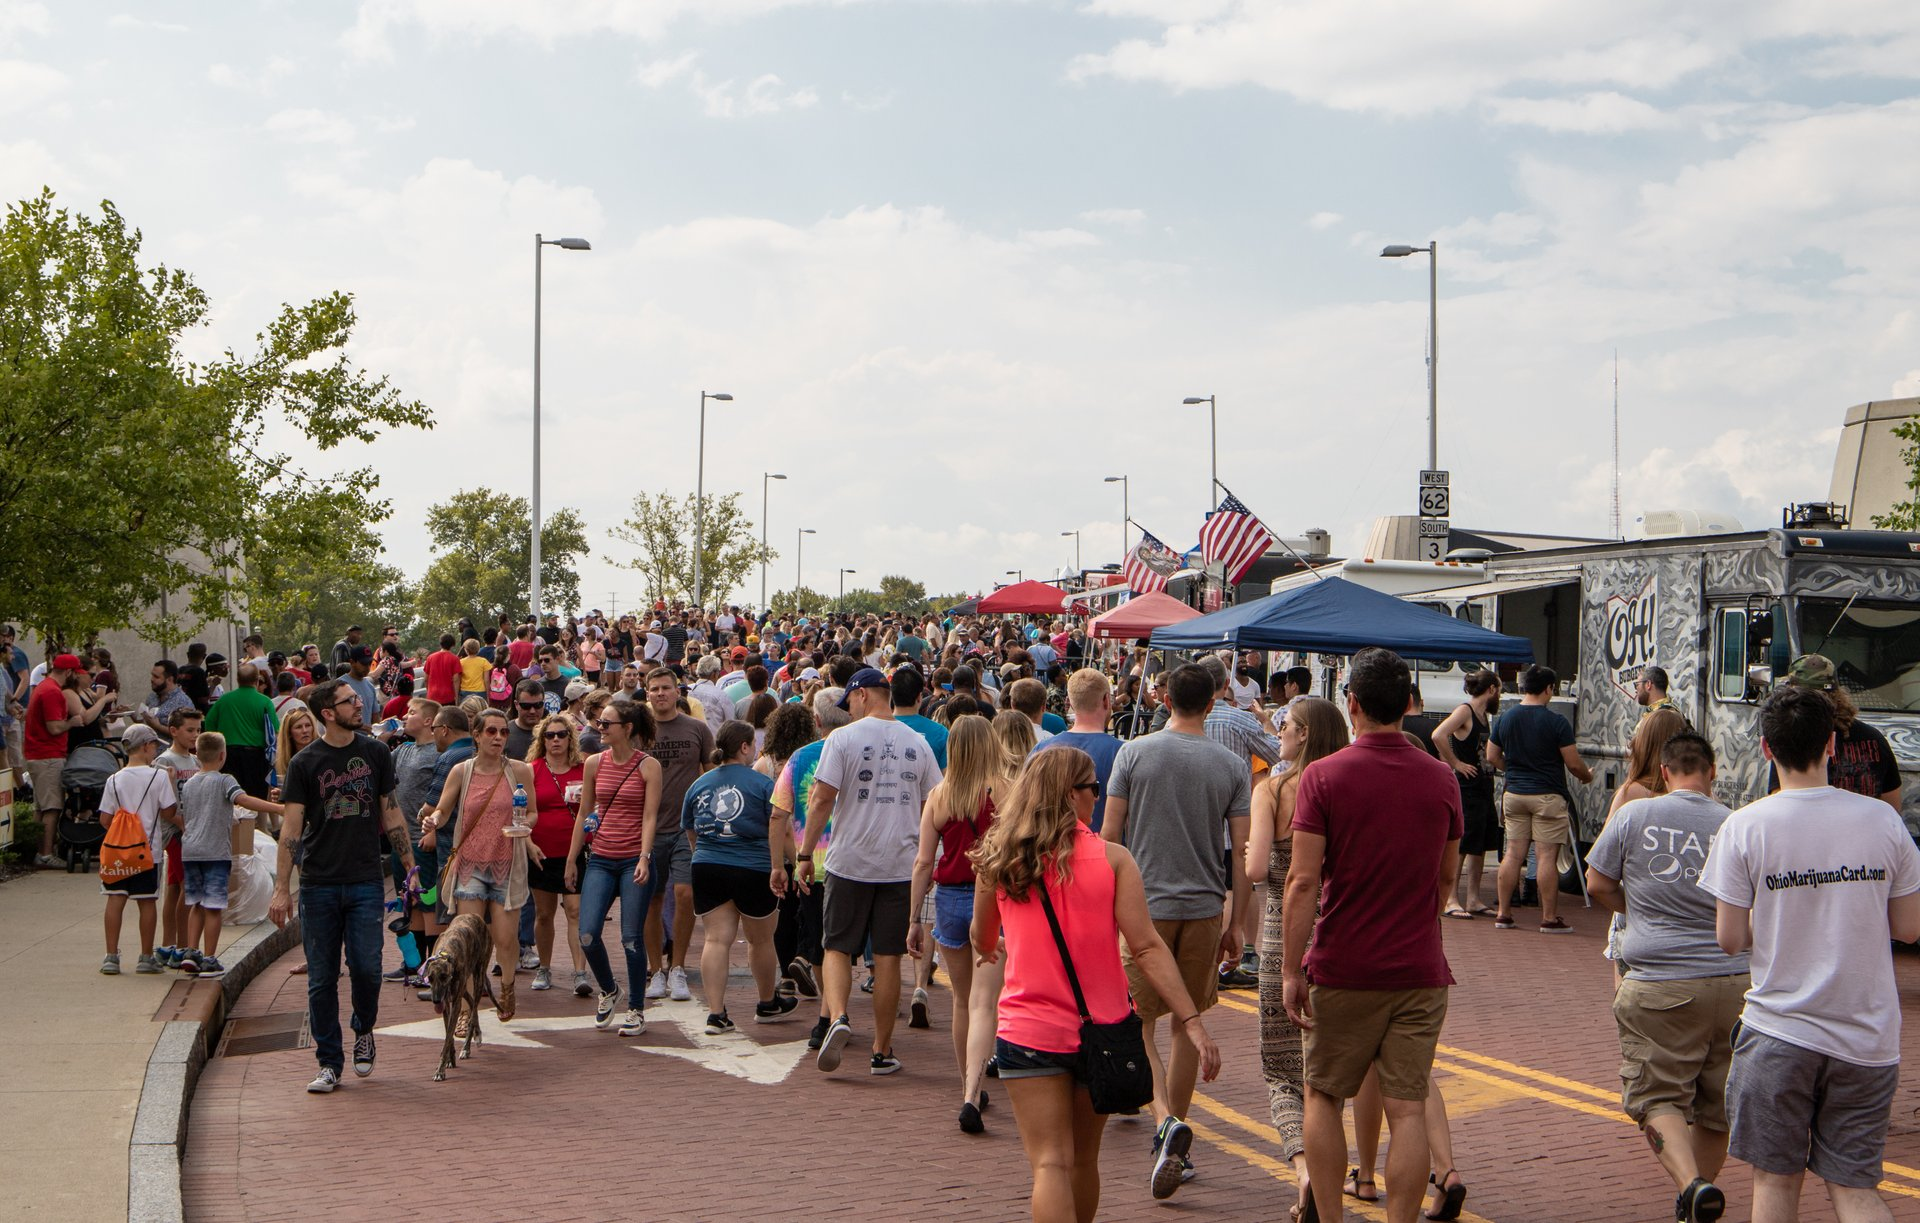 Columbus Food Truck Festival in Ohio - Best Season 2020